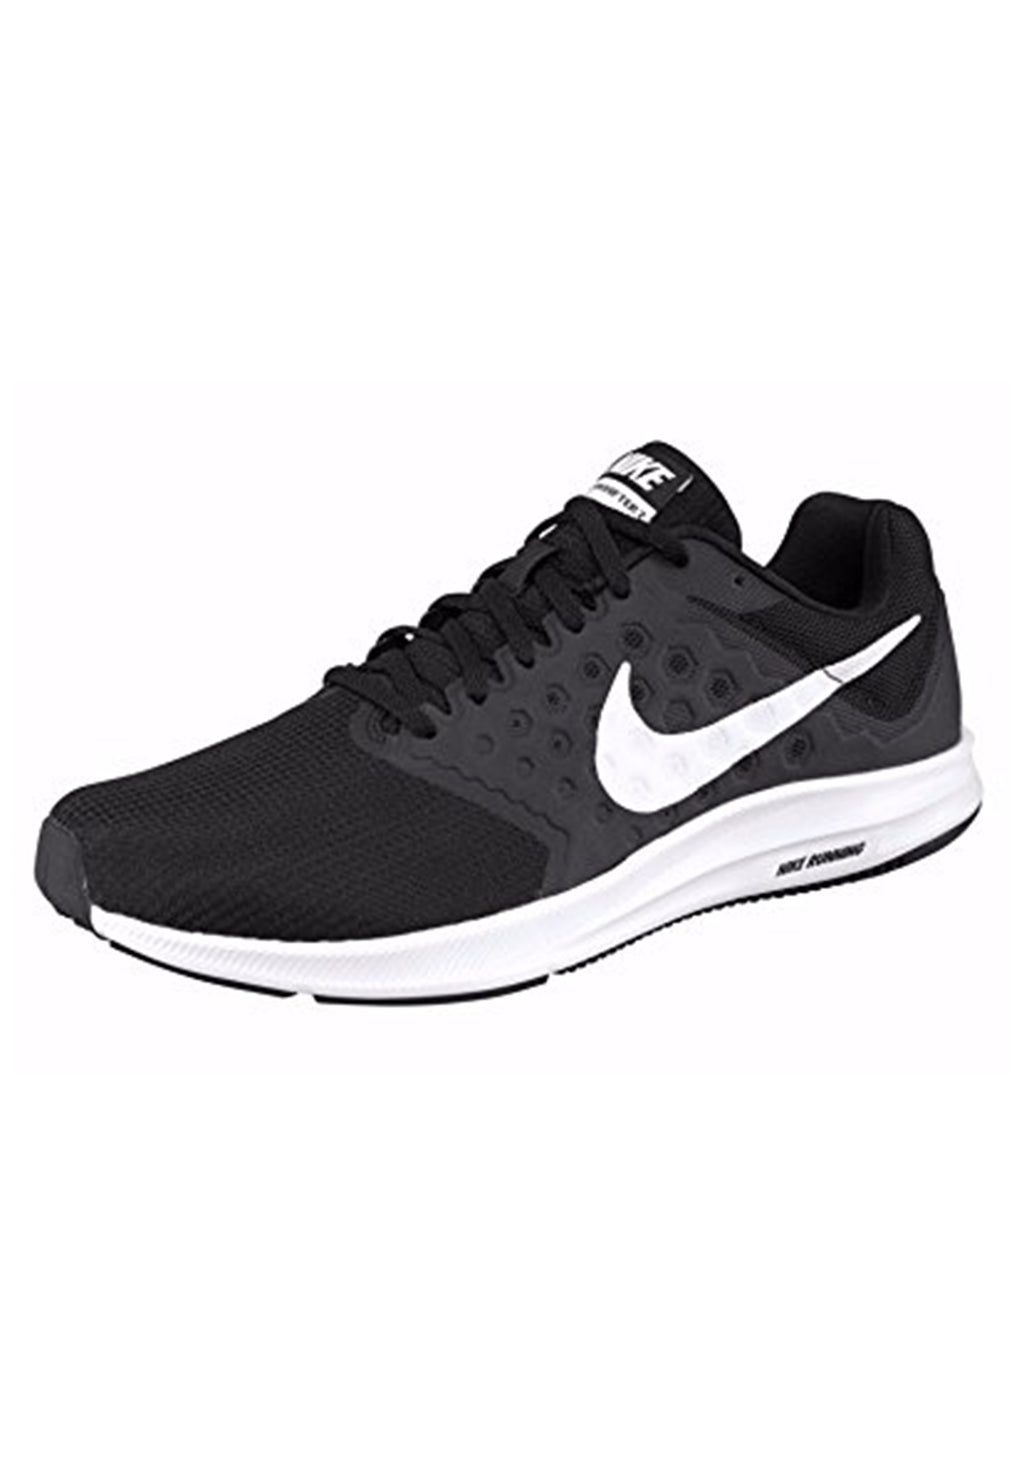 NIKE DOWNSHIFTER 7 MENS <br> 852459 002